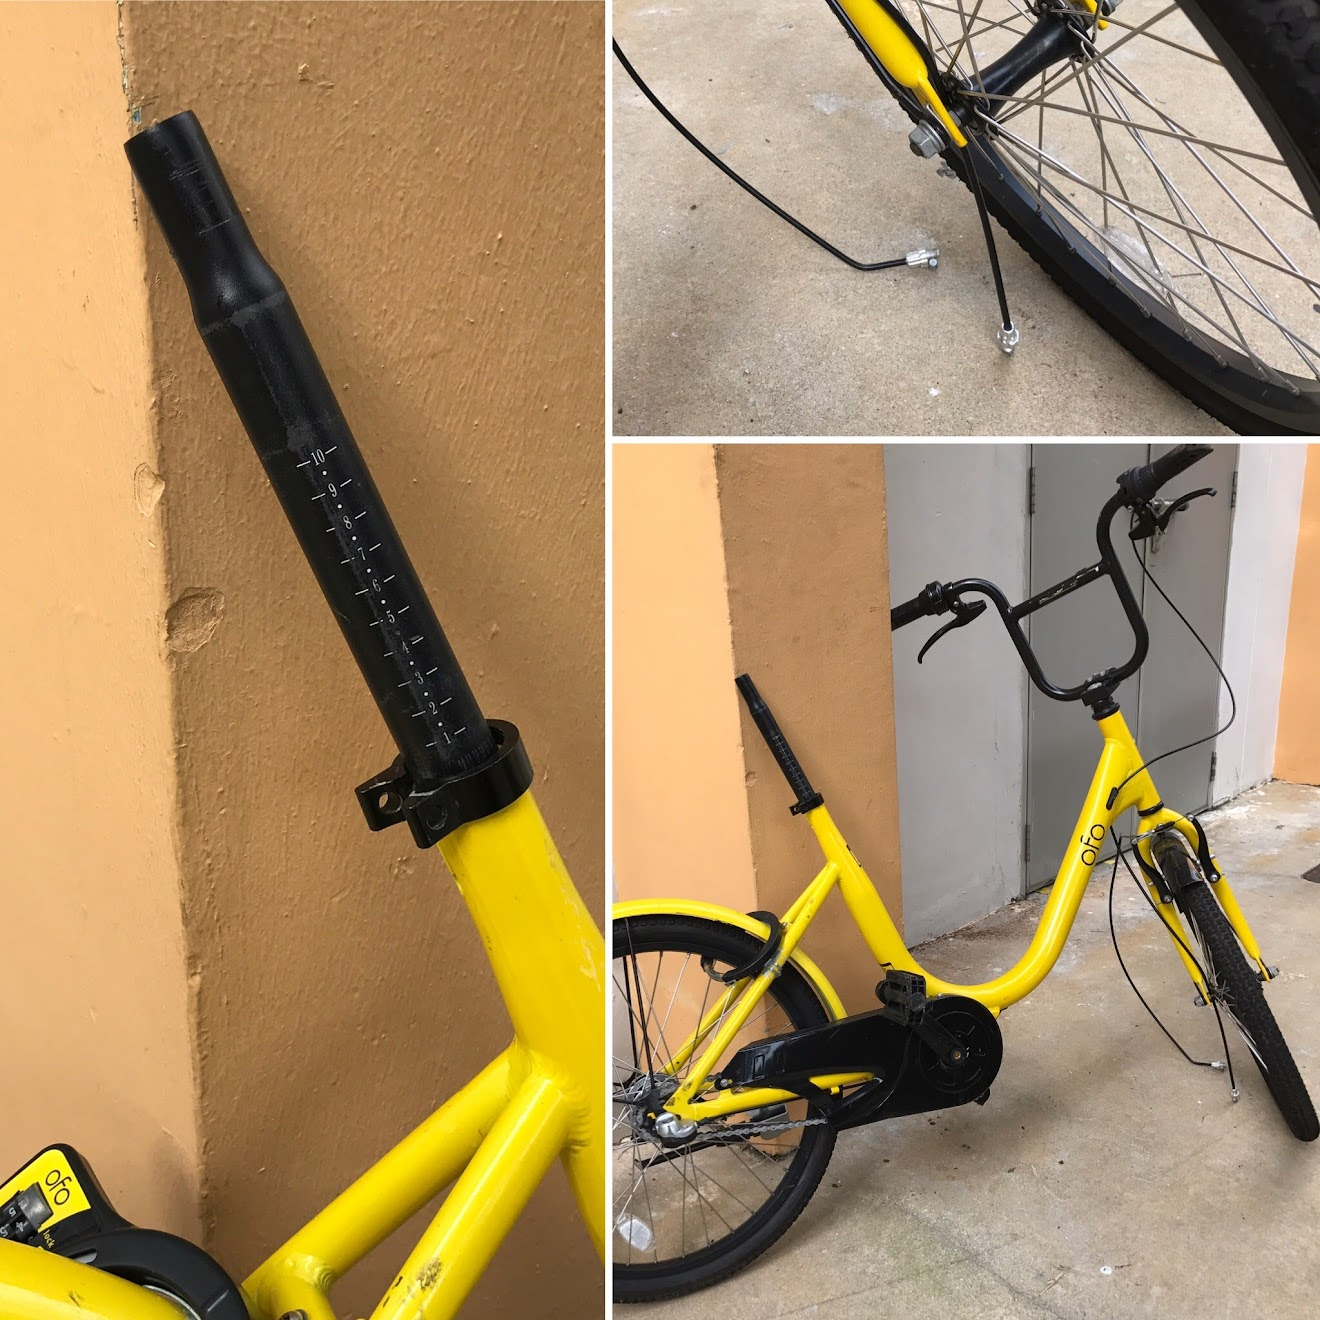 Damaged ofo shared bike.